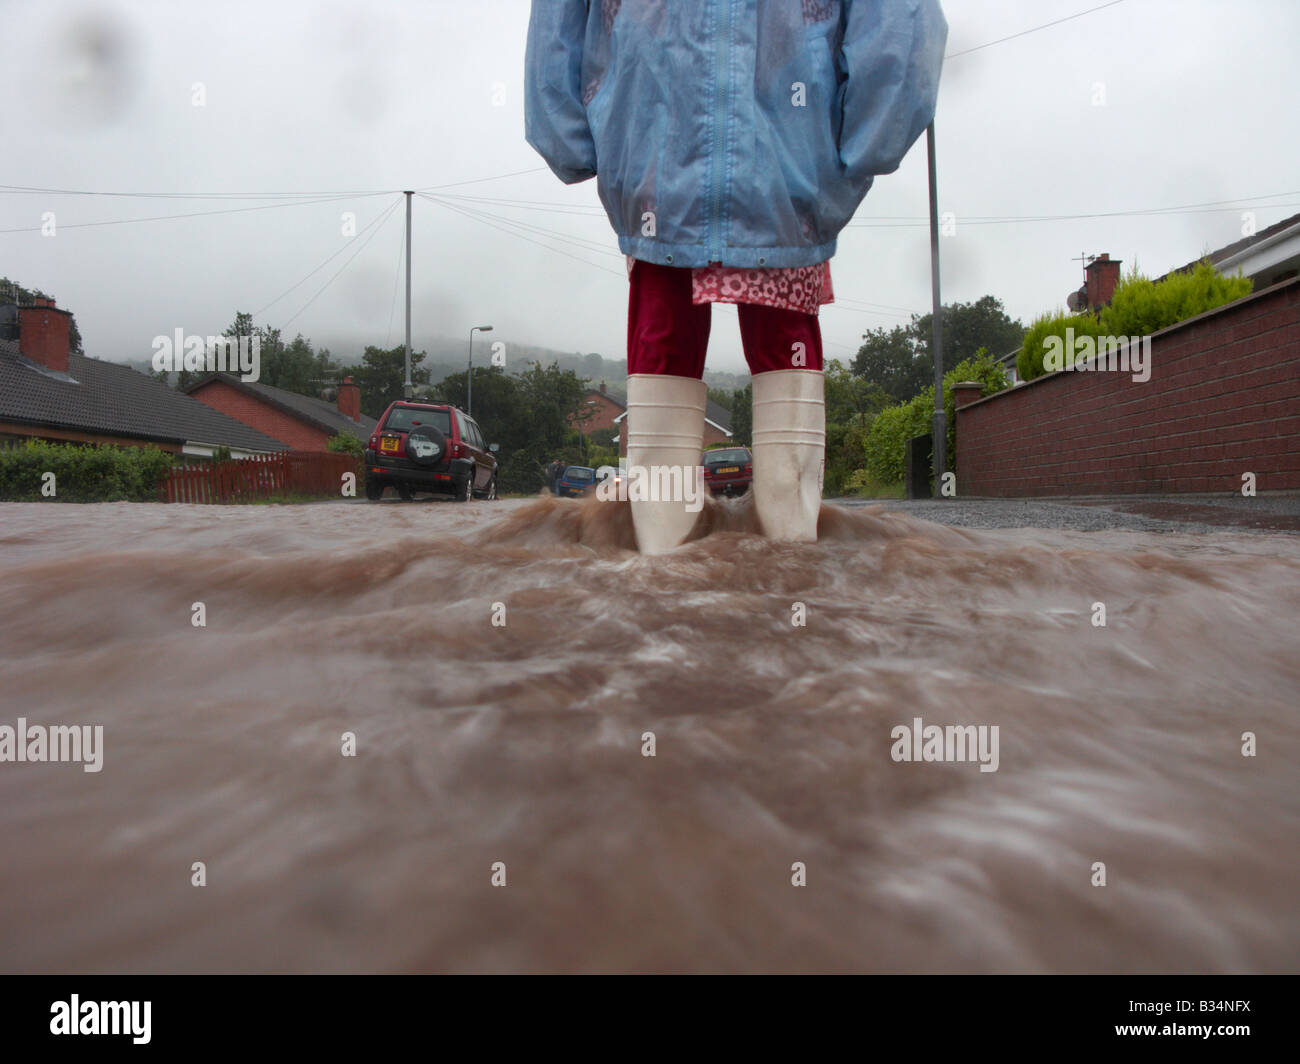 young girl wearing raincoat and wellington boots standing in water from rain and river overflow flooding a street - Stock Image